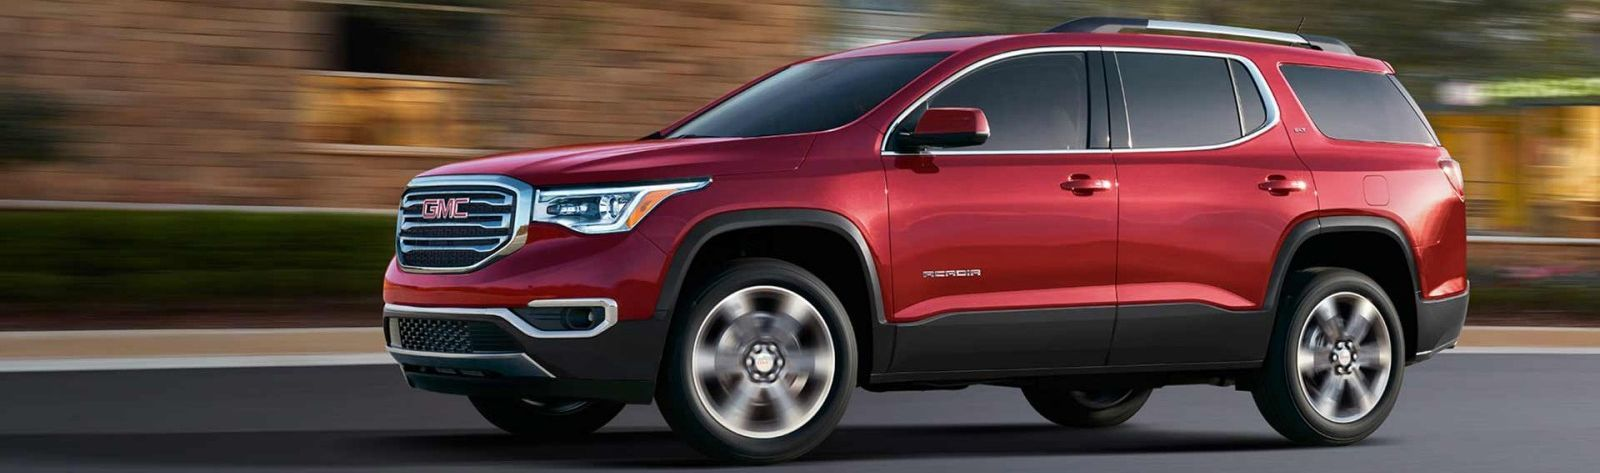 2017 gmc acadia for sale near newton falls oh sweeney gmc. Black Bedroom Furniture Sets. Home Design Ideas